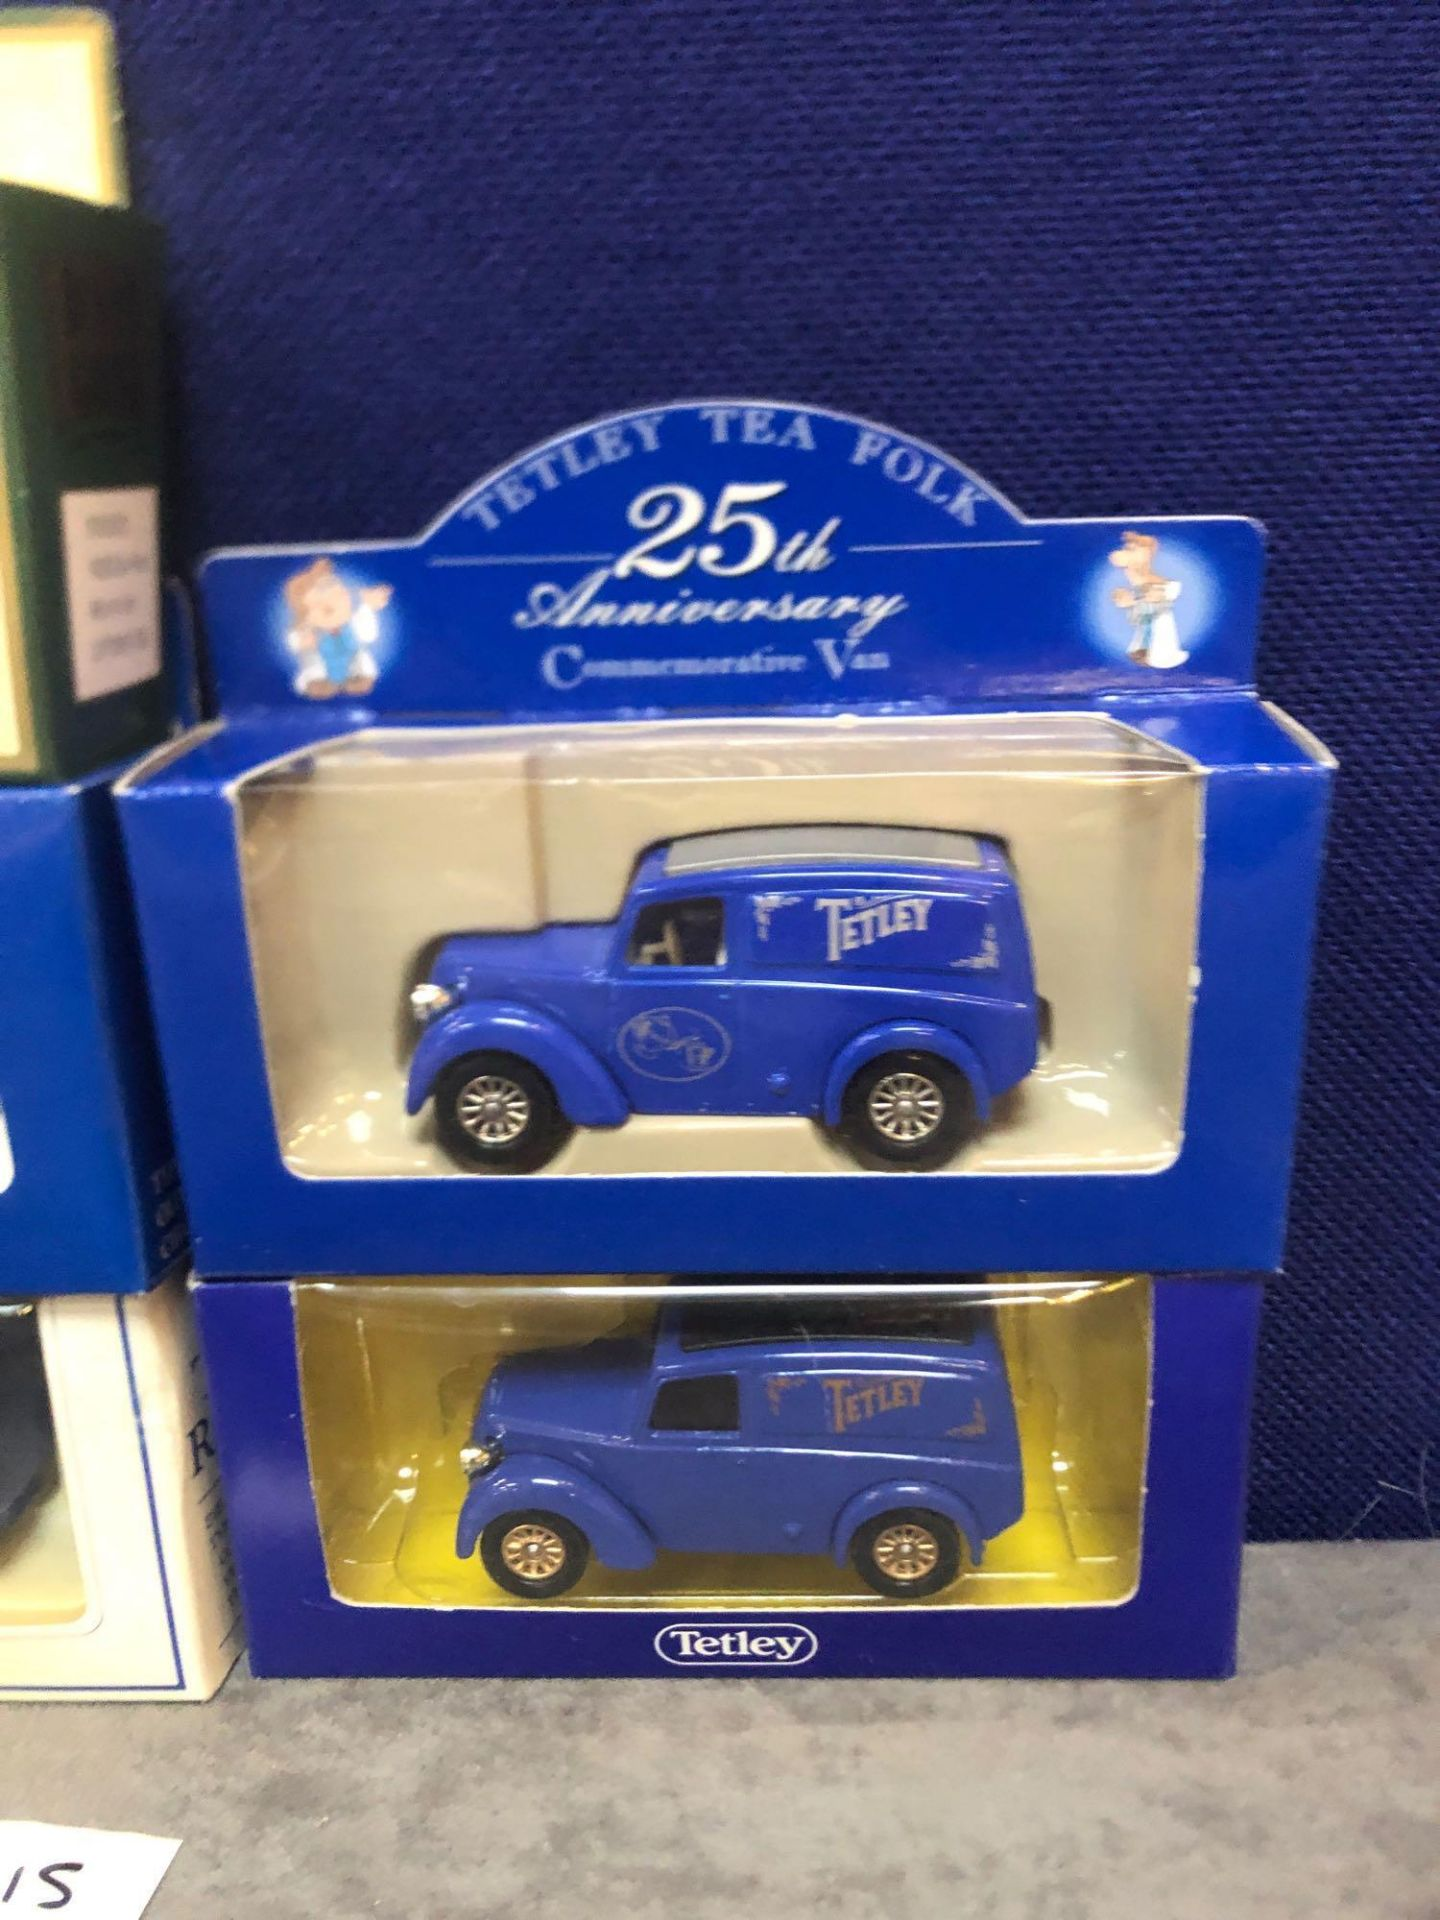 7x Diecast Vehicles Advertising Tea, All In Individual Boxes - Image 2 of 4